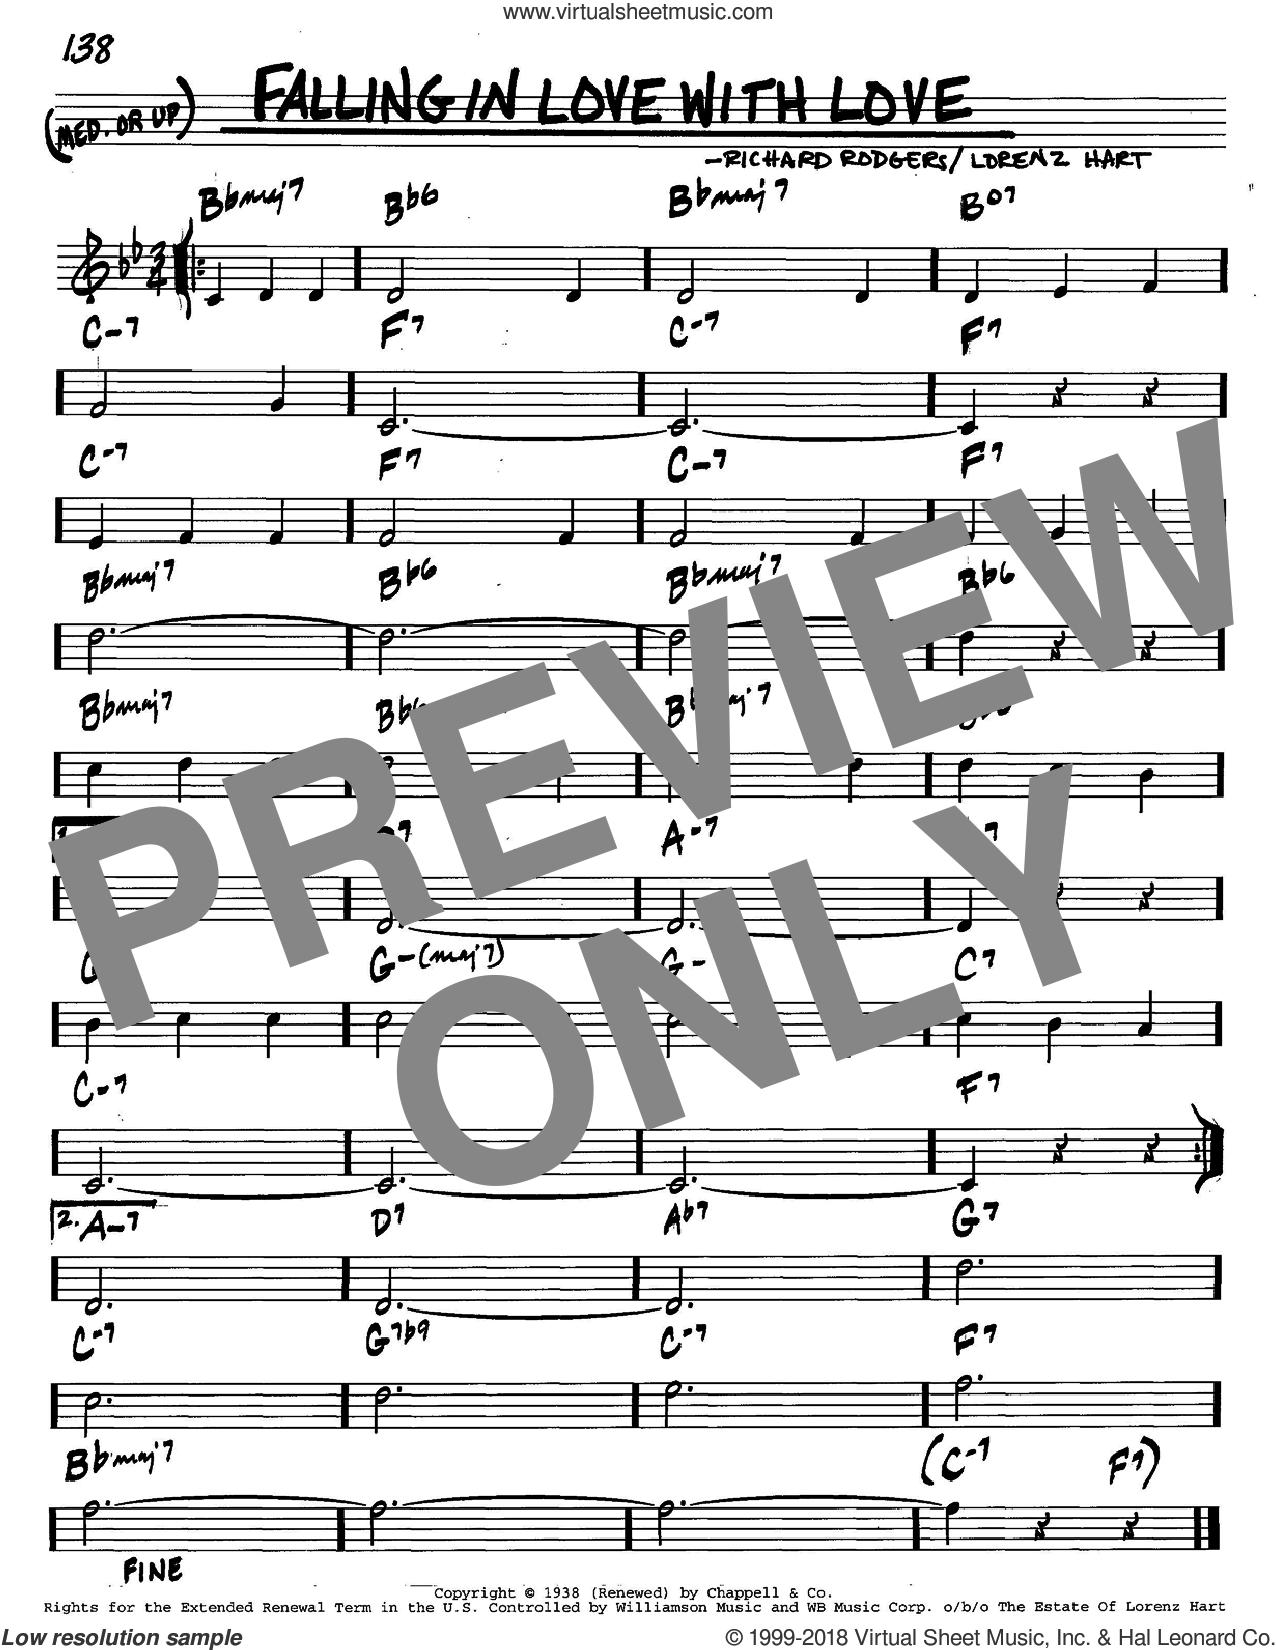 Falling In Love With Love sheet music for voice and other instruments (C) by Richard Rodgers, Rodgers & Hart and Lorenz Hart. Score Image Preview.